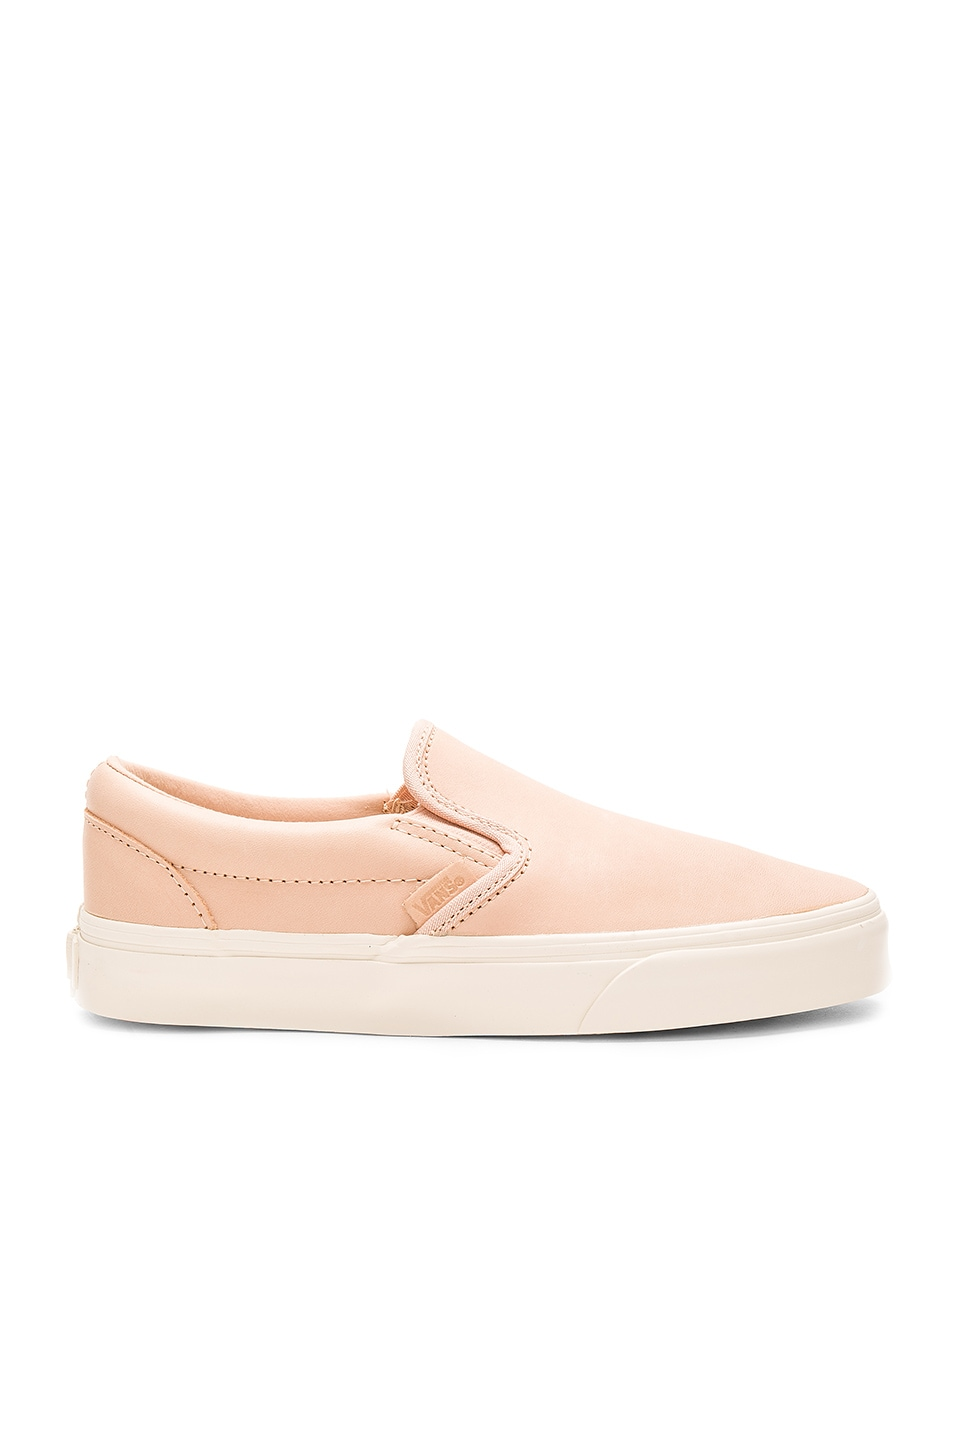 Classic Slip On DX Sneaker by Vans